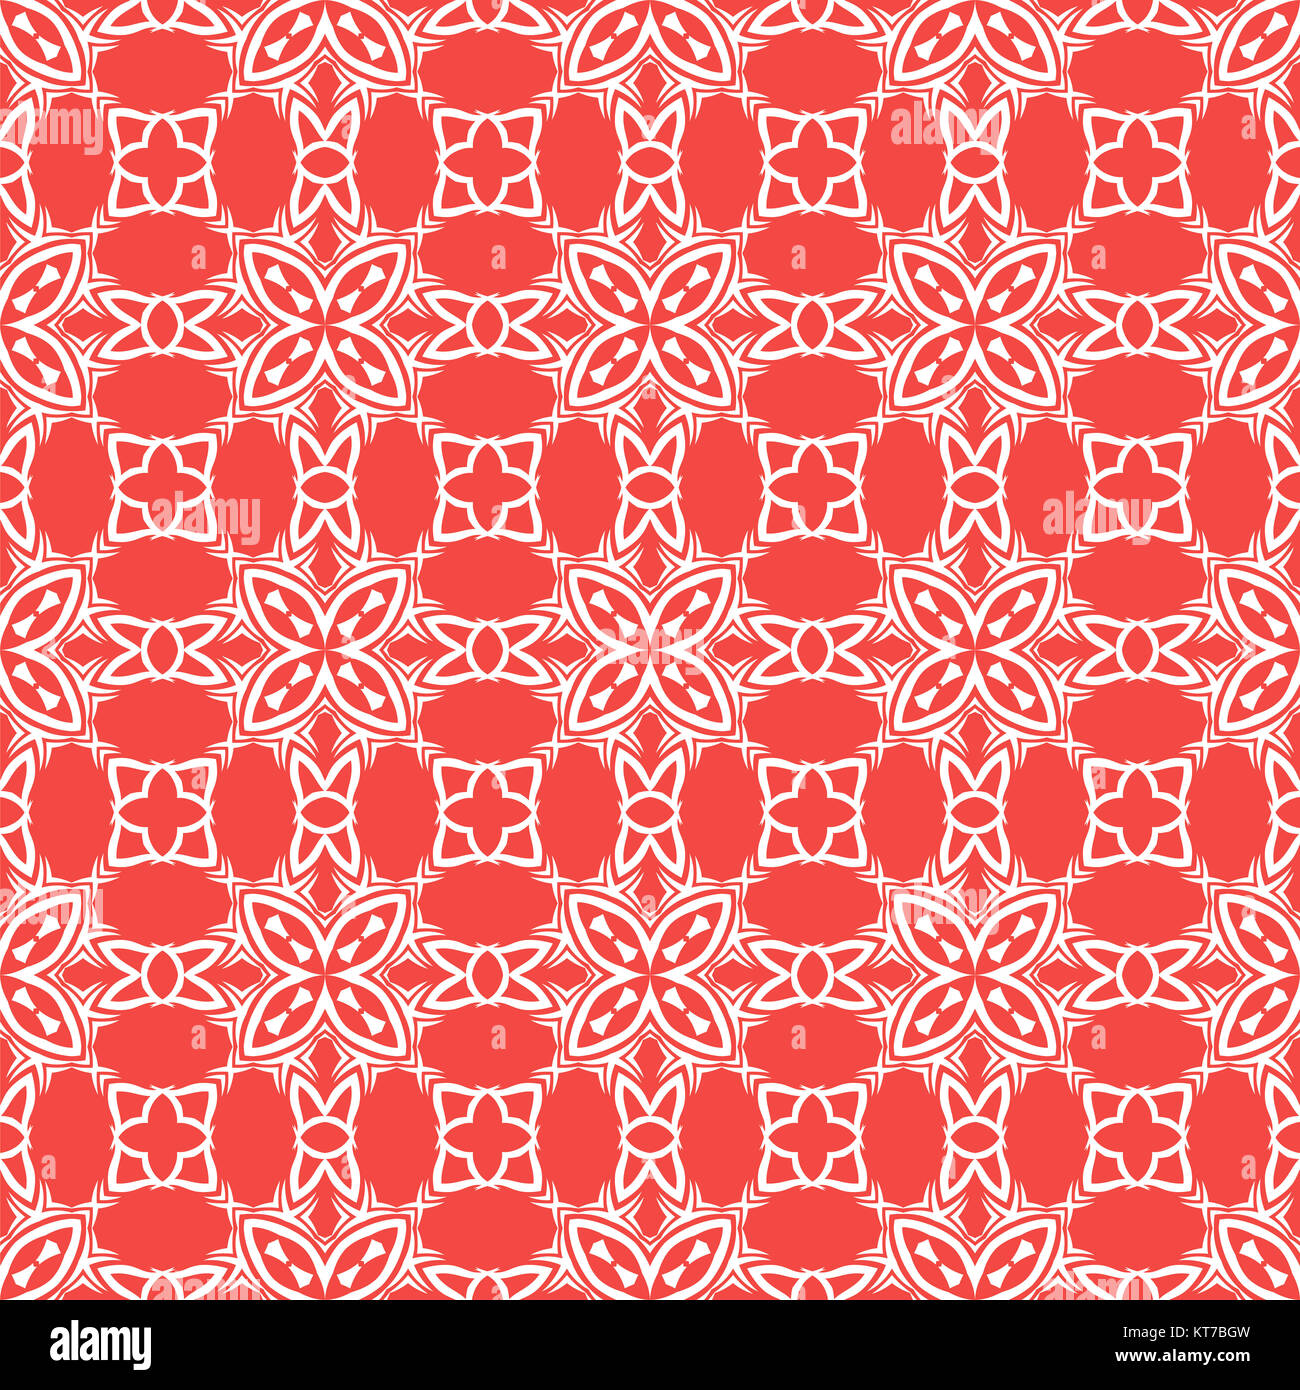 Decorative Retro Seamless Red Pattern - Stock Image